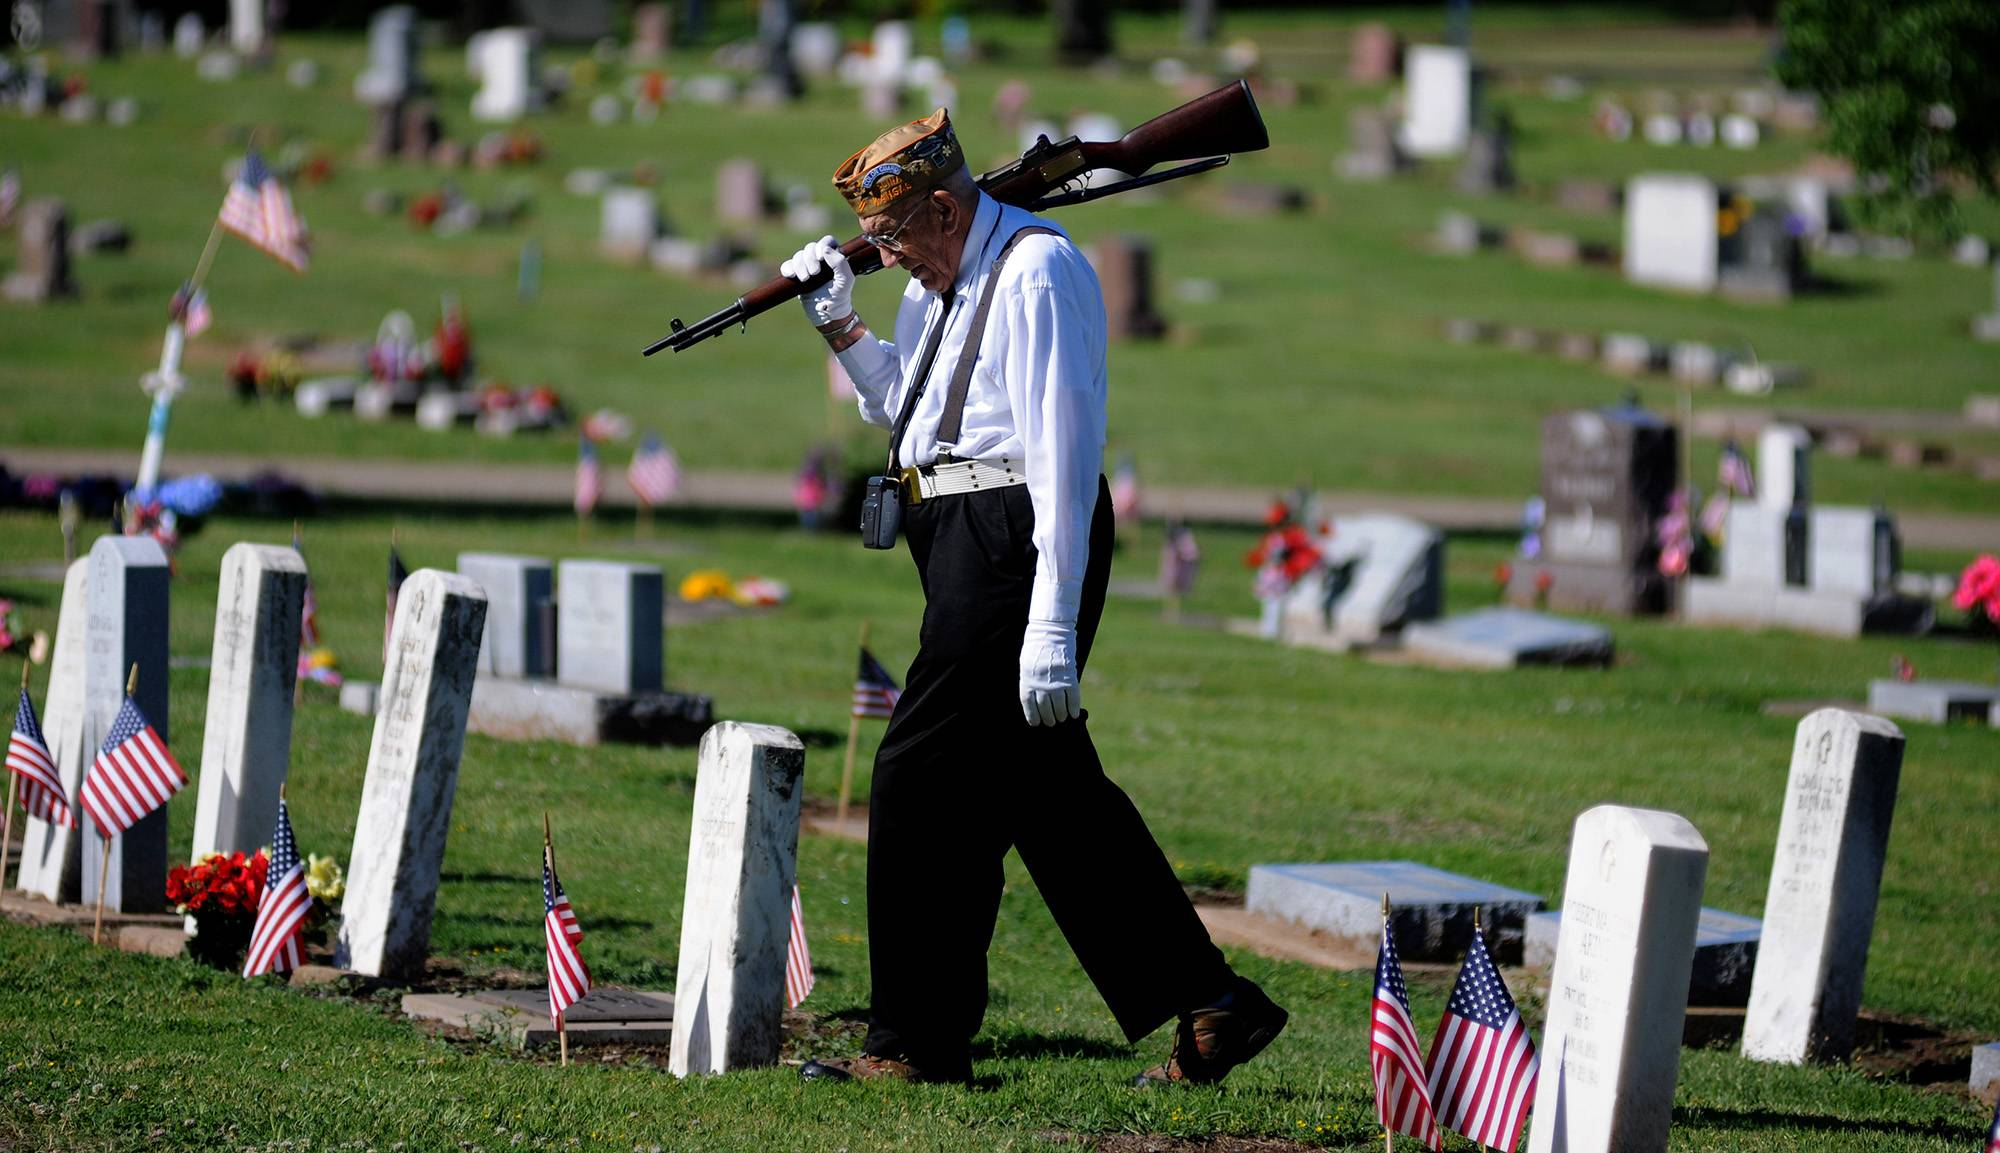 Bill Siebert, of Salina, a member of the VFW Post 1432 Firing Squad, walks through Gypsum Hill Cemetery to join his squad Monday, May 26, 2014, in Salina, Kan. Siebert served during World War II as a soldier in the 80th Infantry Division in France and Germany.